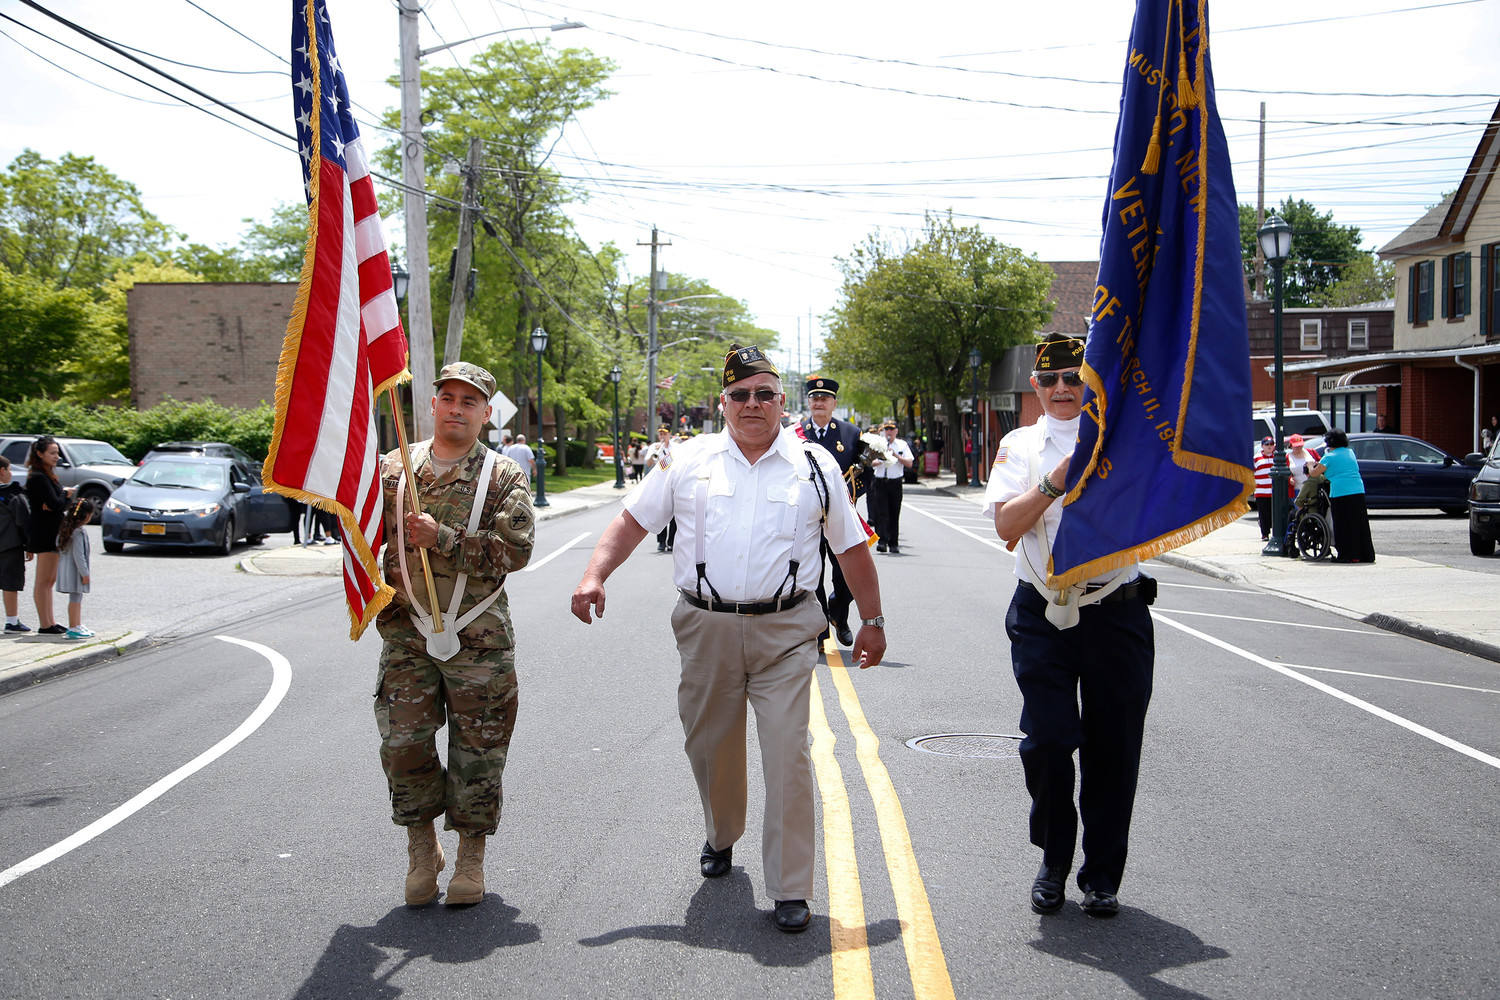 Inwood's Memorial Day Parade in 2017 was lead by, from left, this year's grand marshal, Mike Martinez, VFW Commander Frank Santora and Ron Sorrentino.